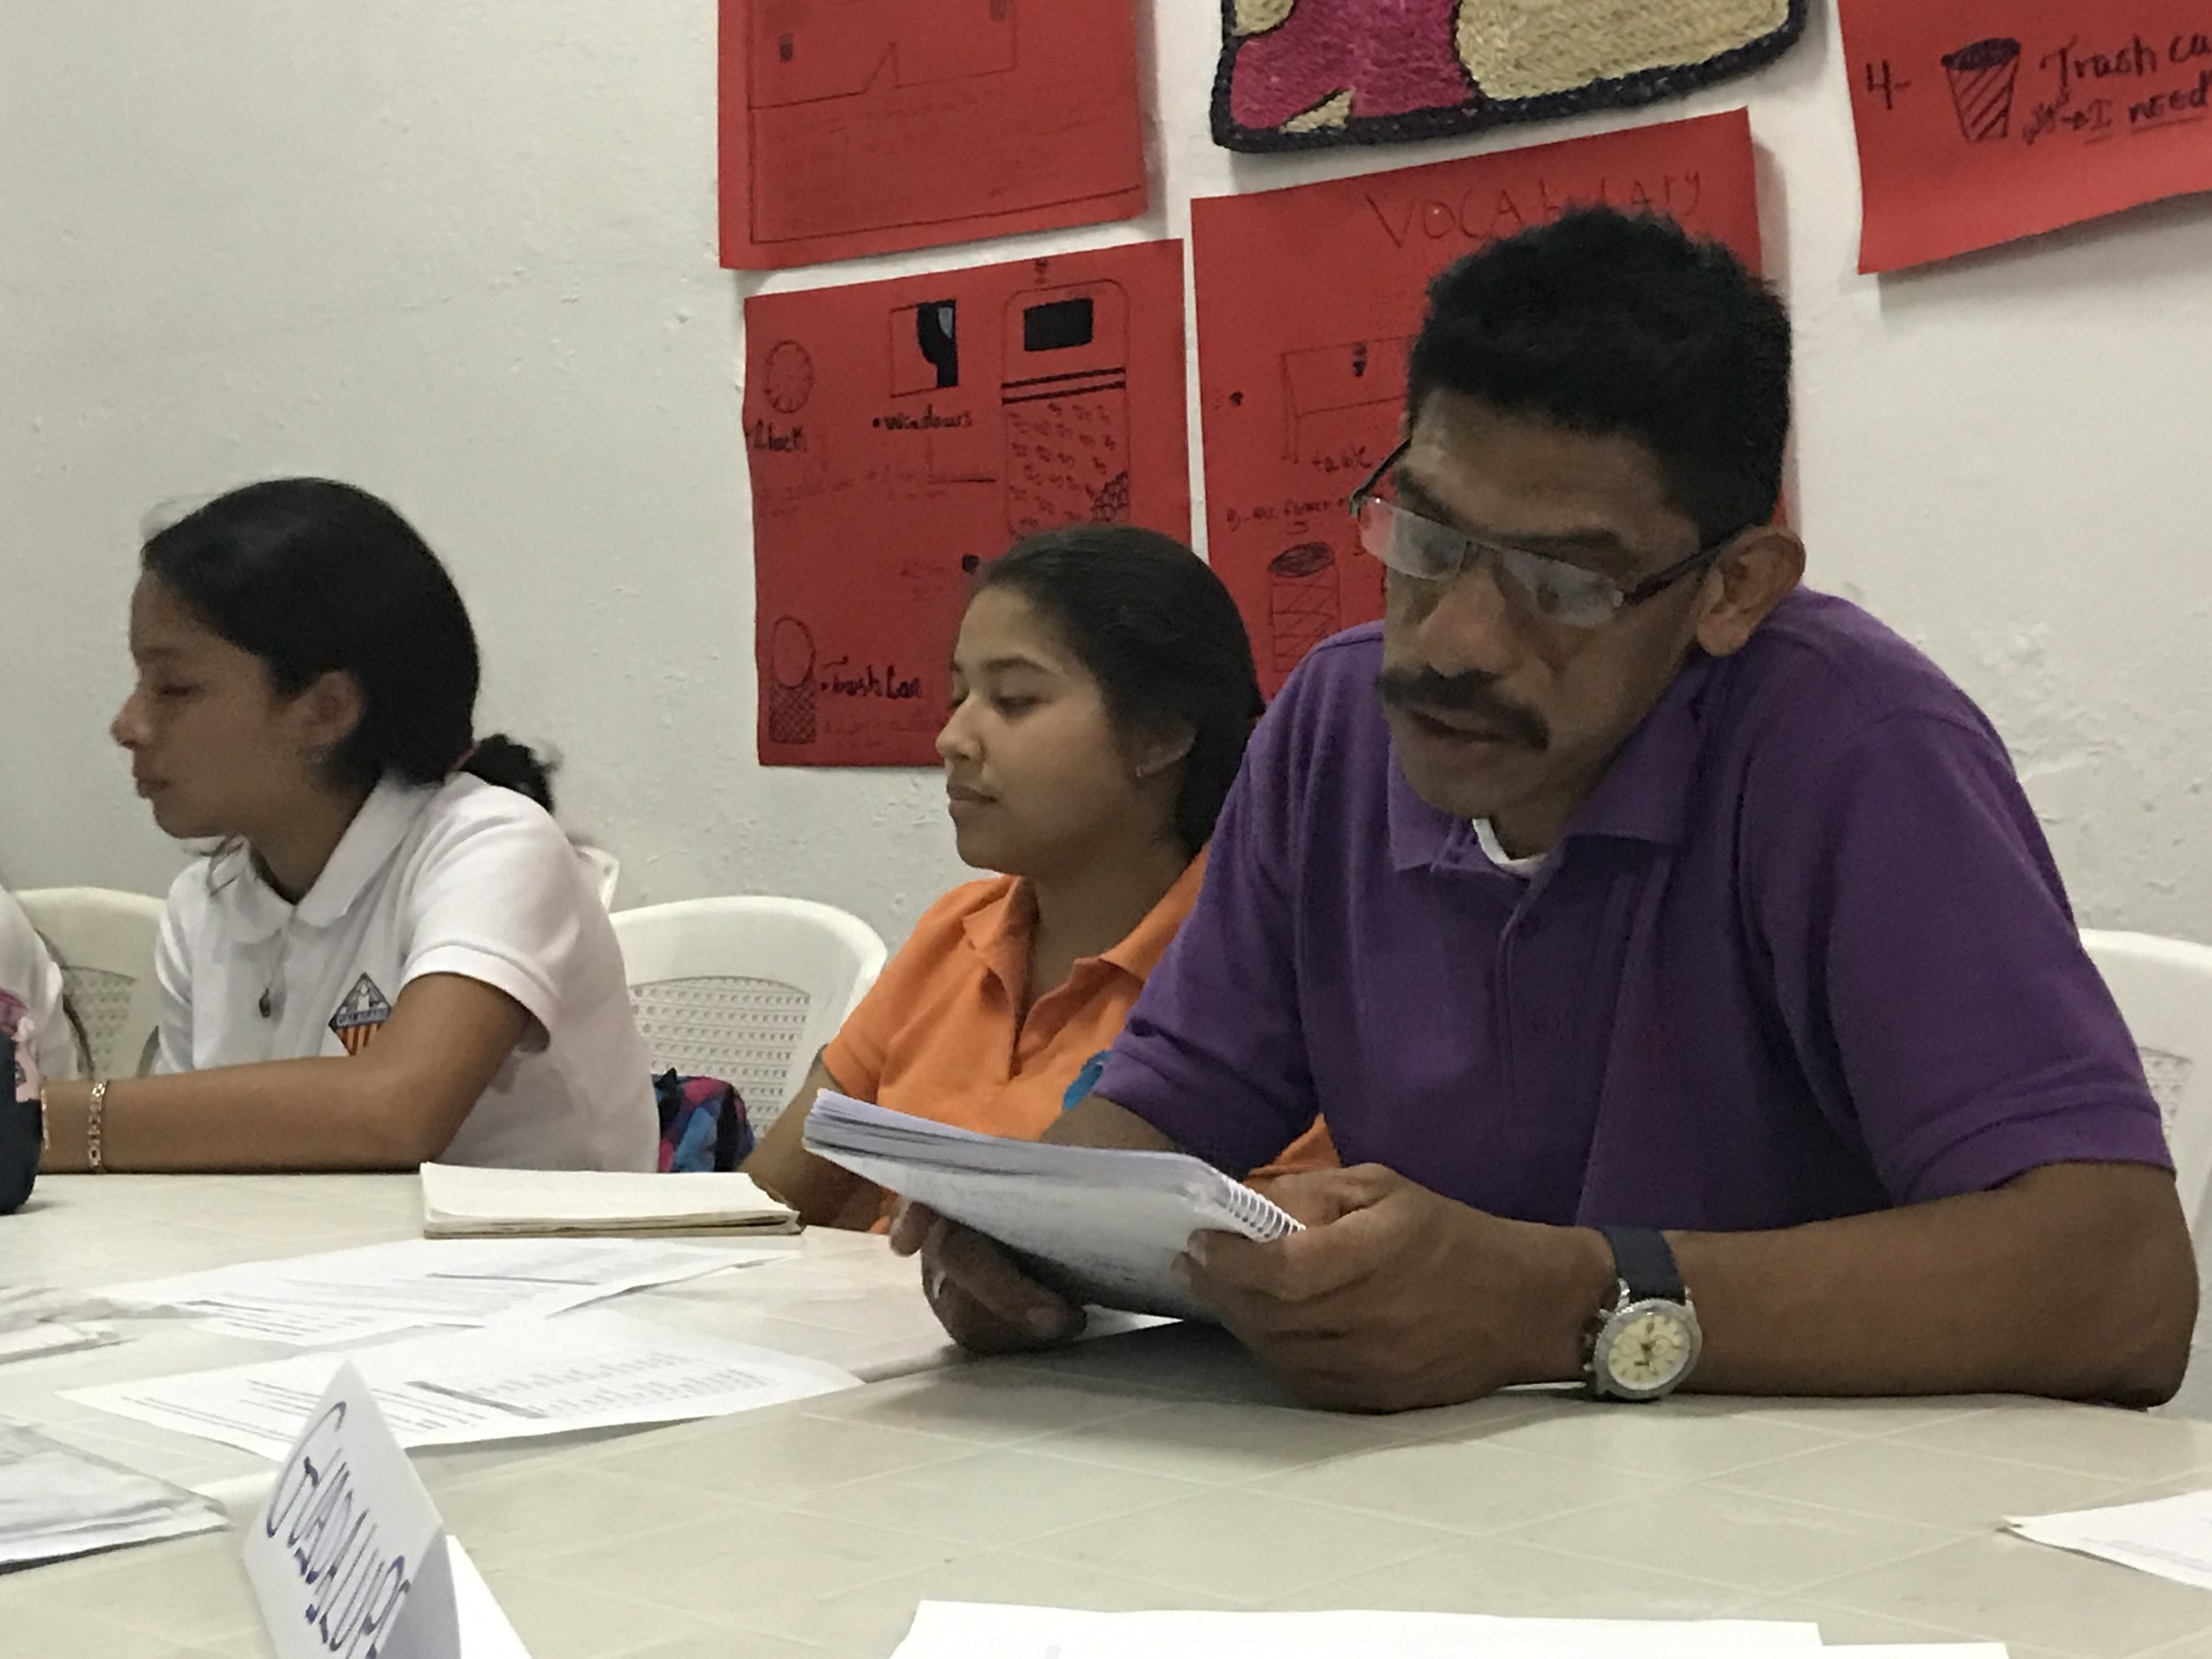 Guadalupe maintains a full time job during the day and attends English classes four nights a week at ITA Nicaragua in León.